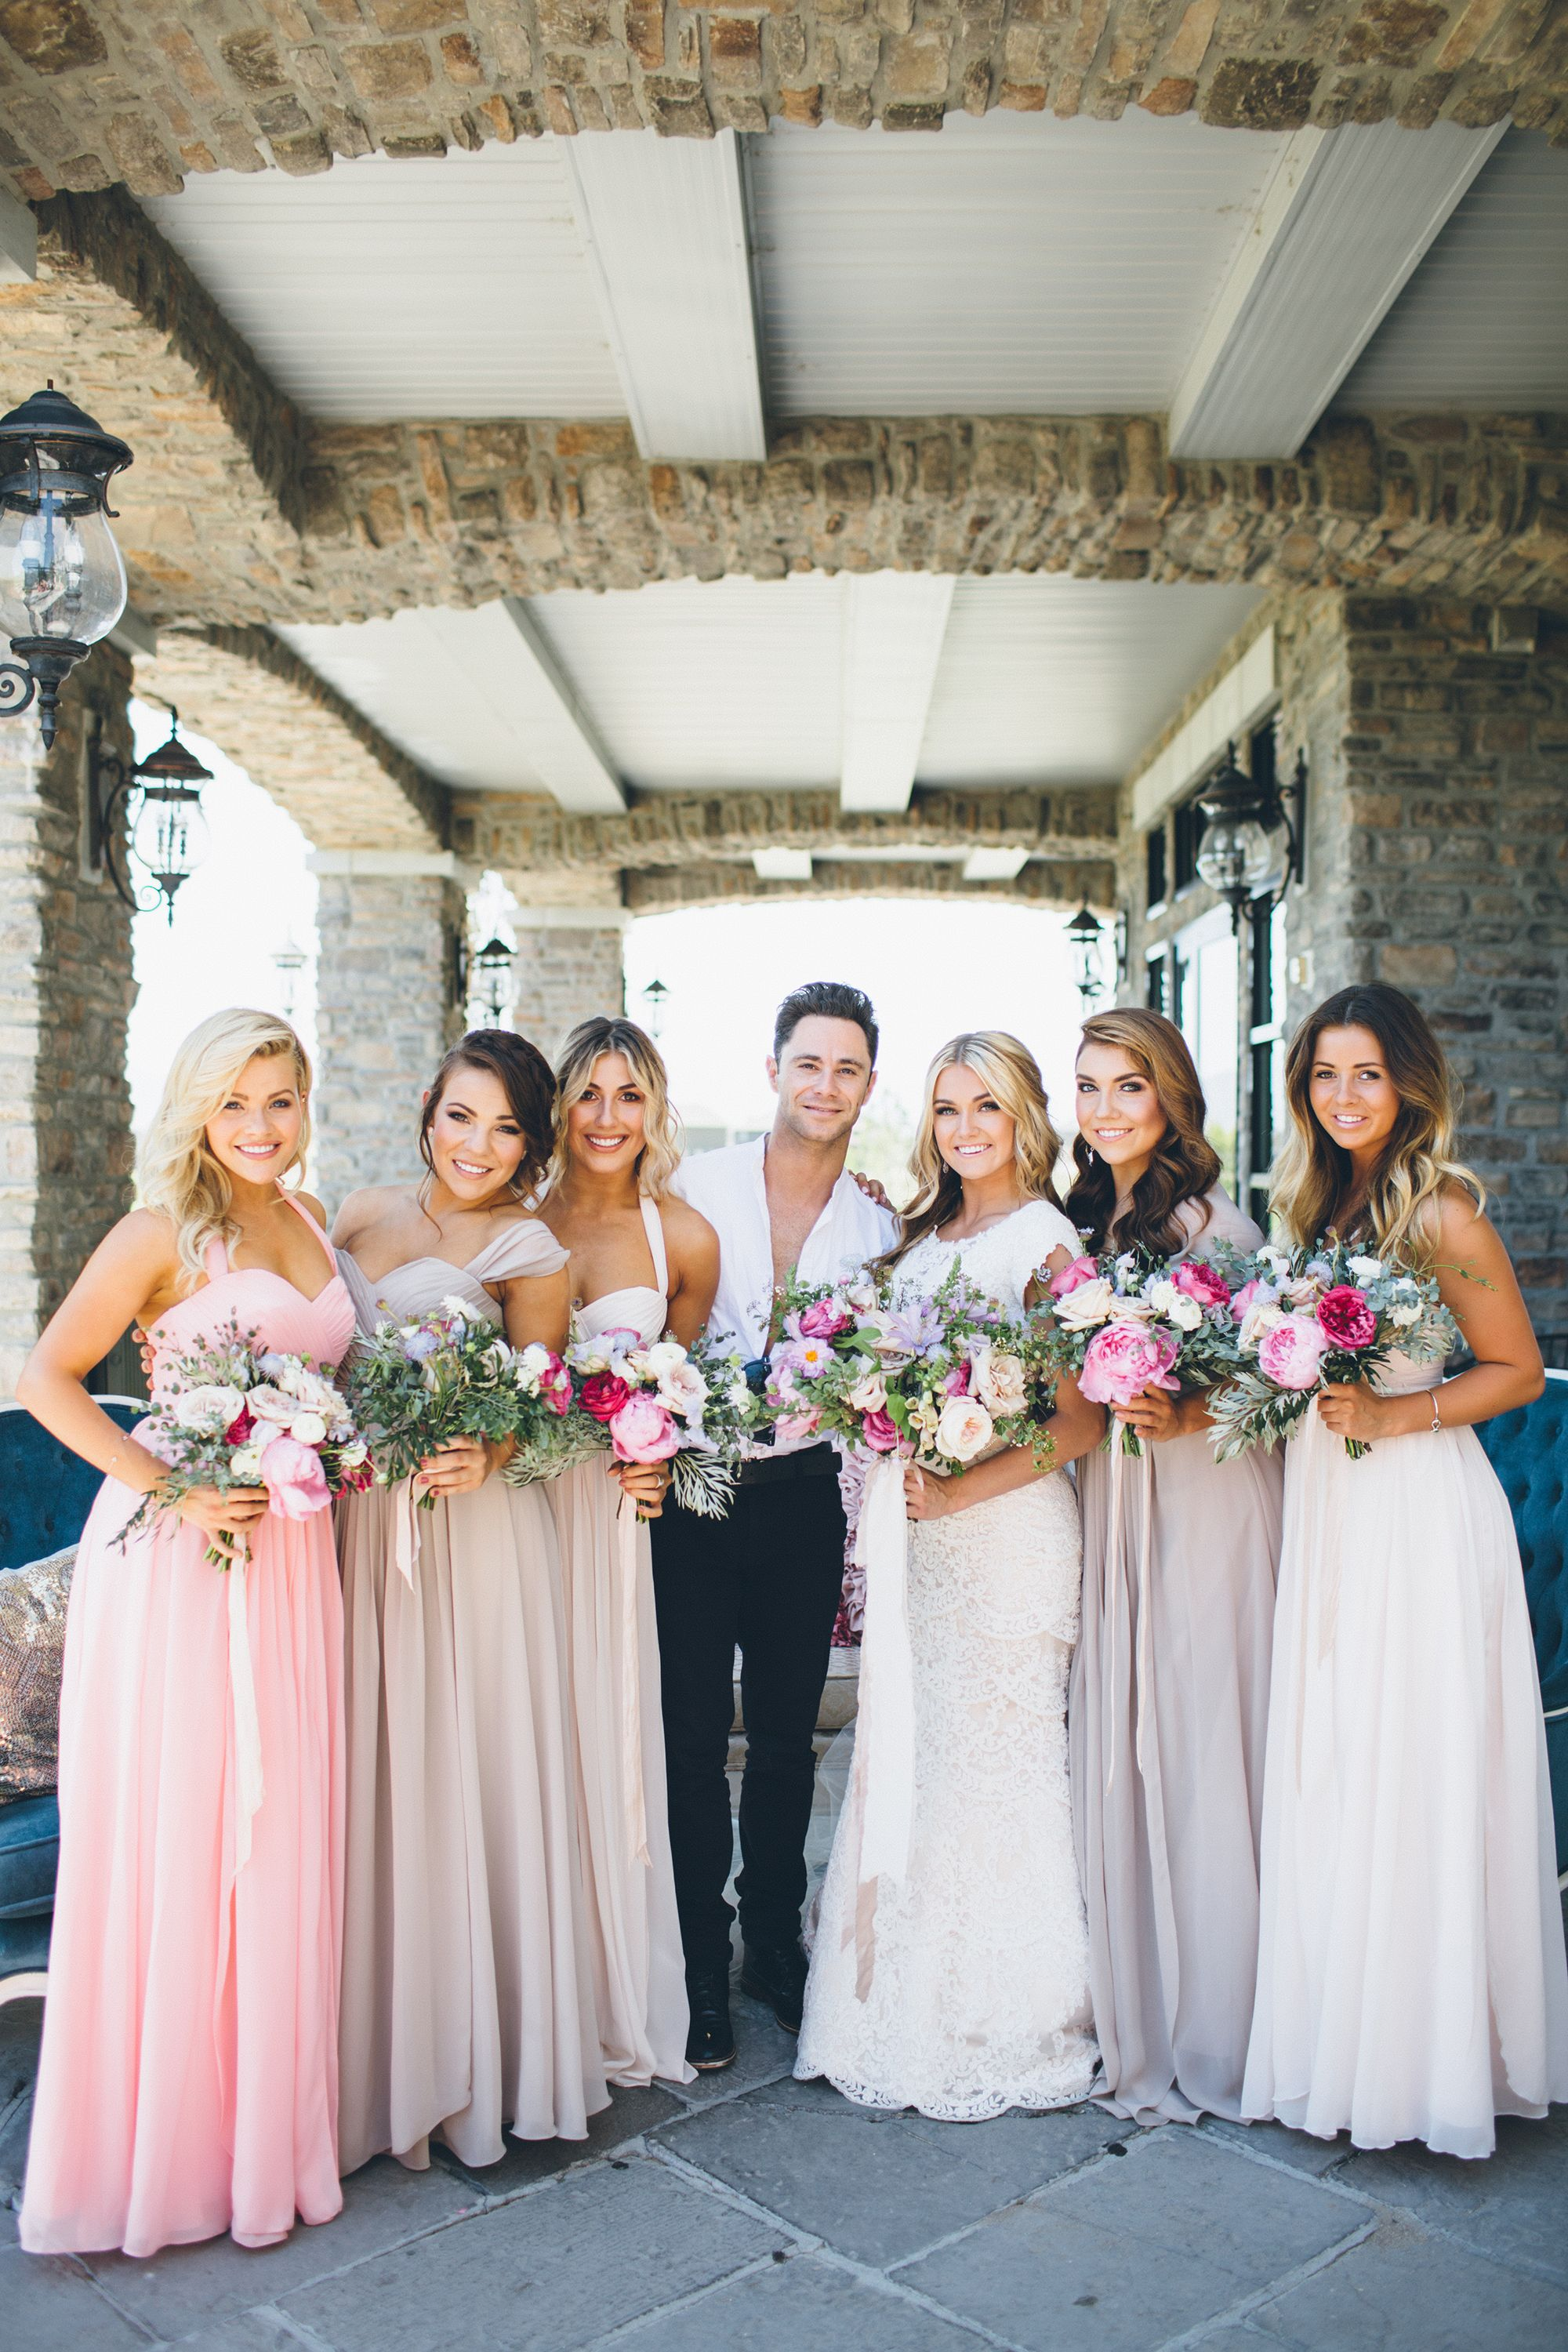 Lindsay Arnold Wedding.Lindsay Arnold Wedding Dancing With The Stars Bridal Party